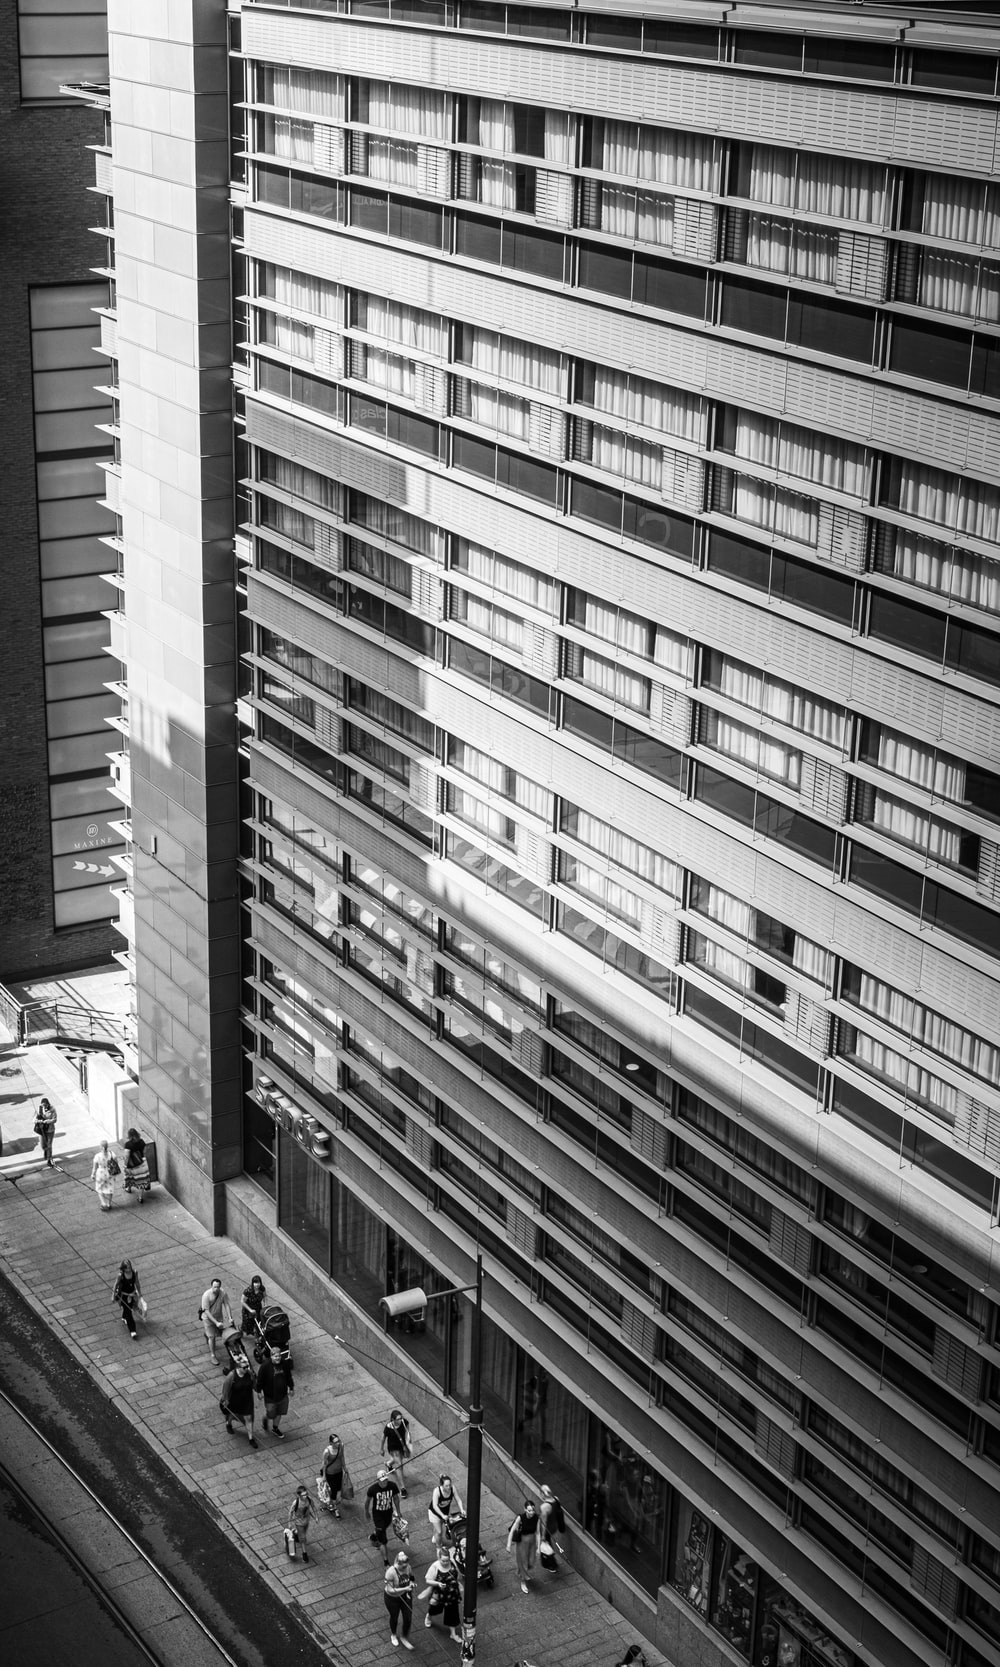 grayscale photo of people walking on street in between high rise buildings